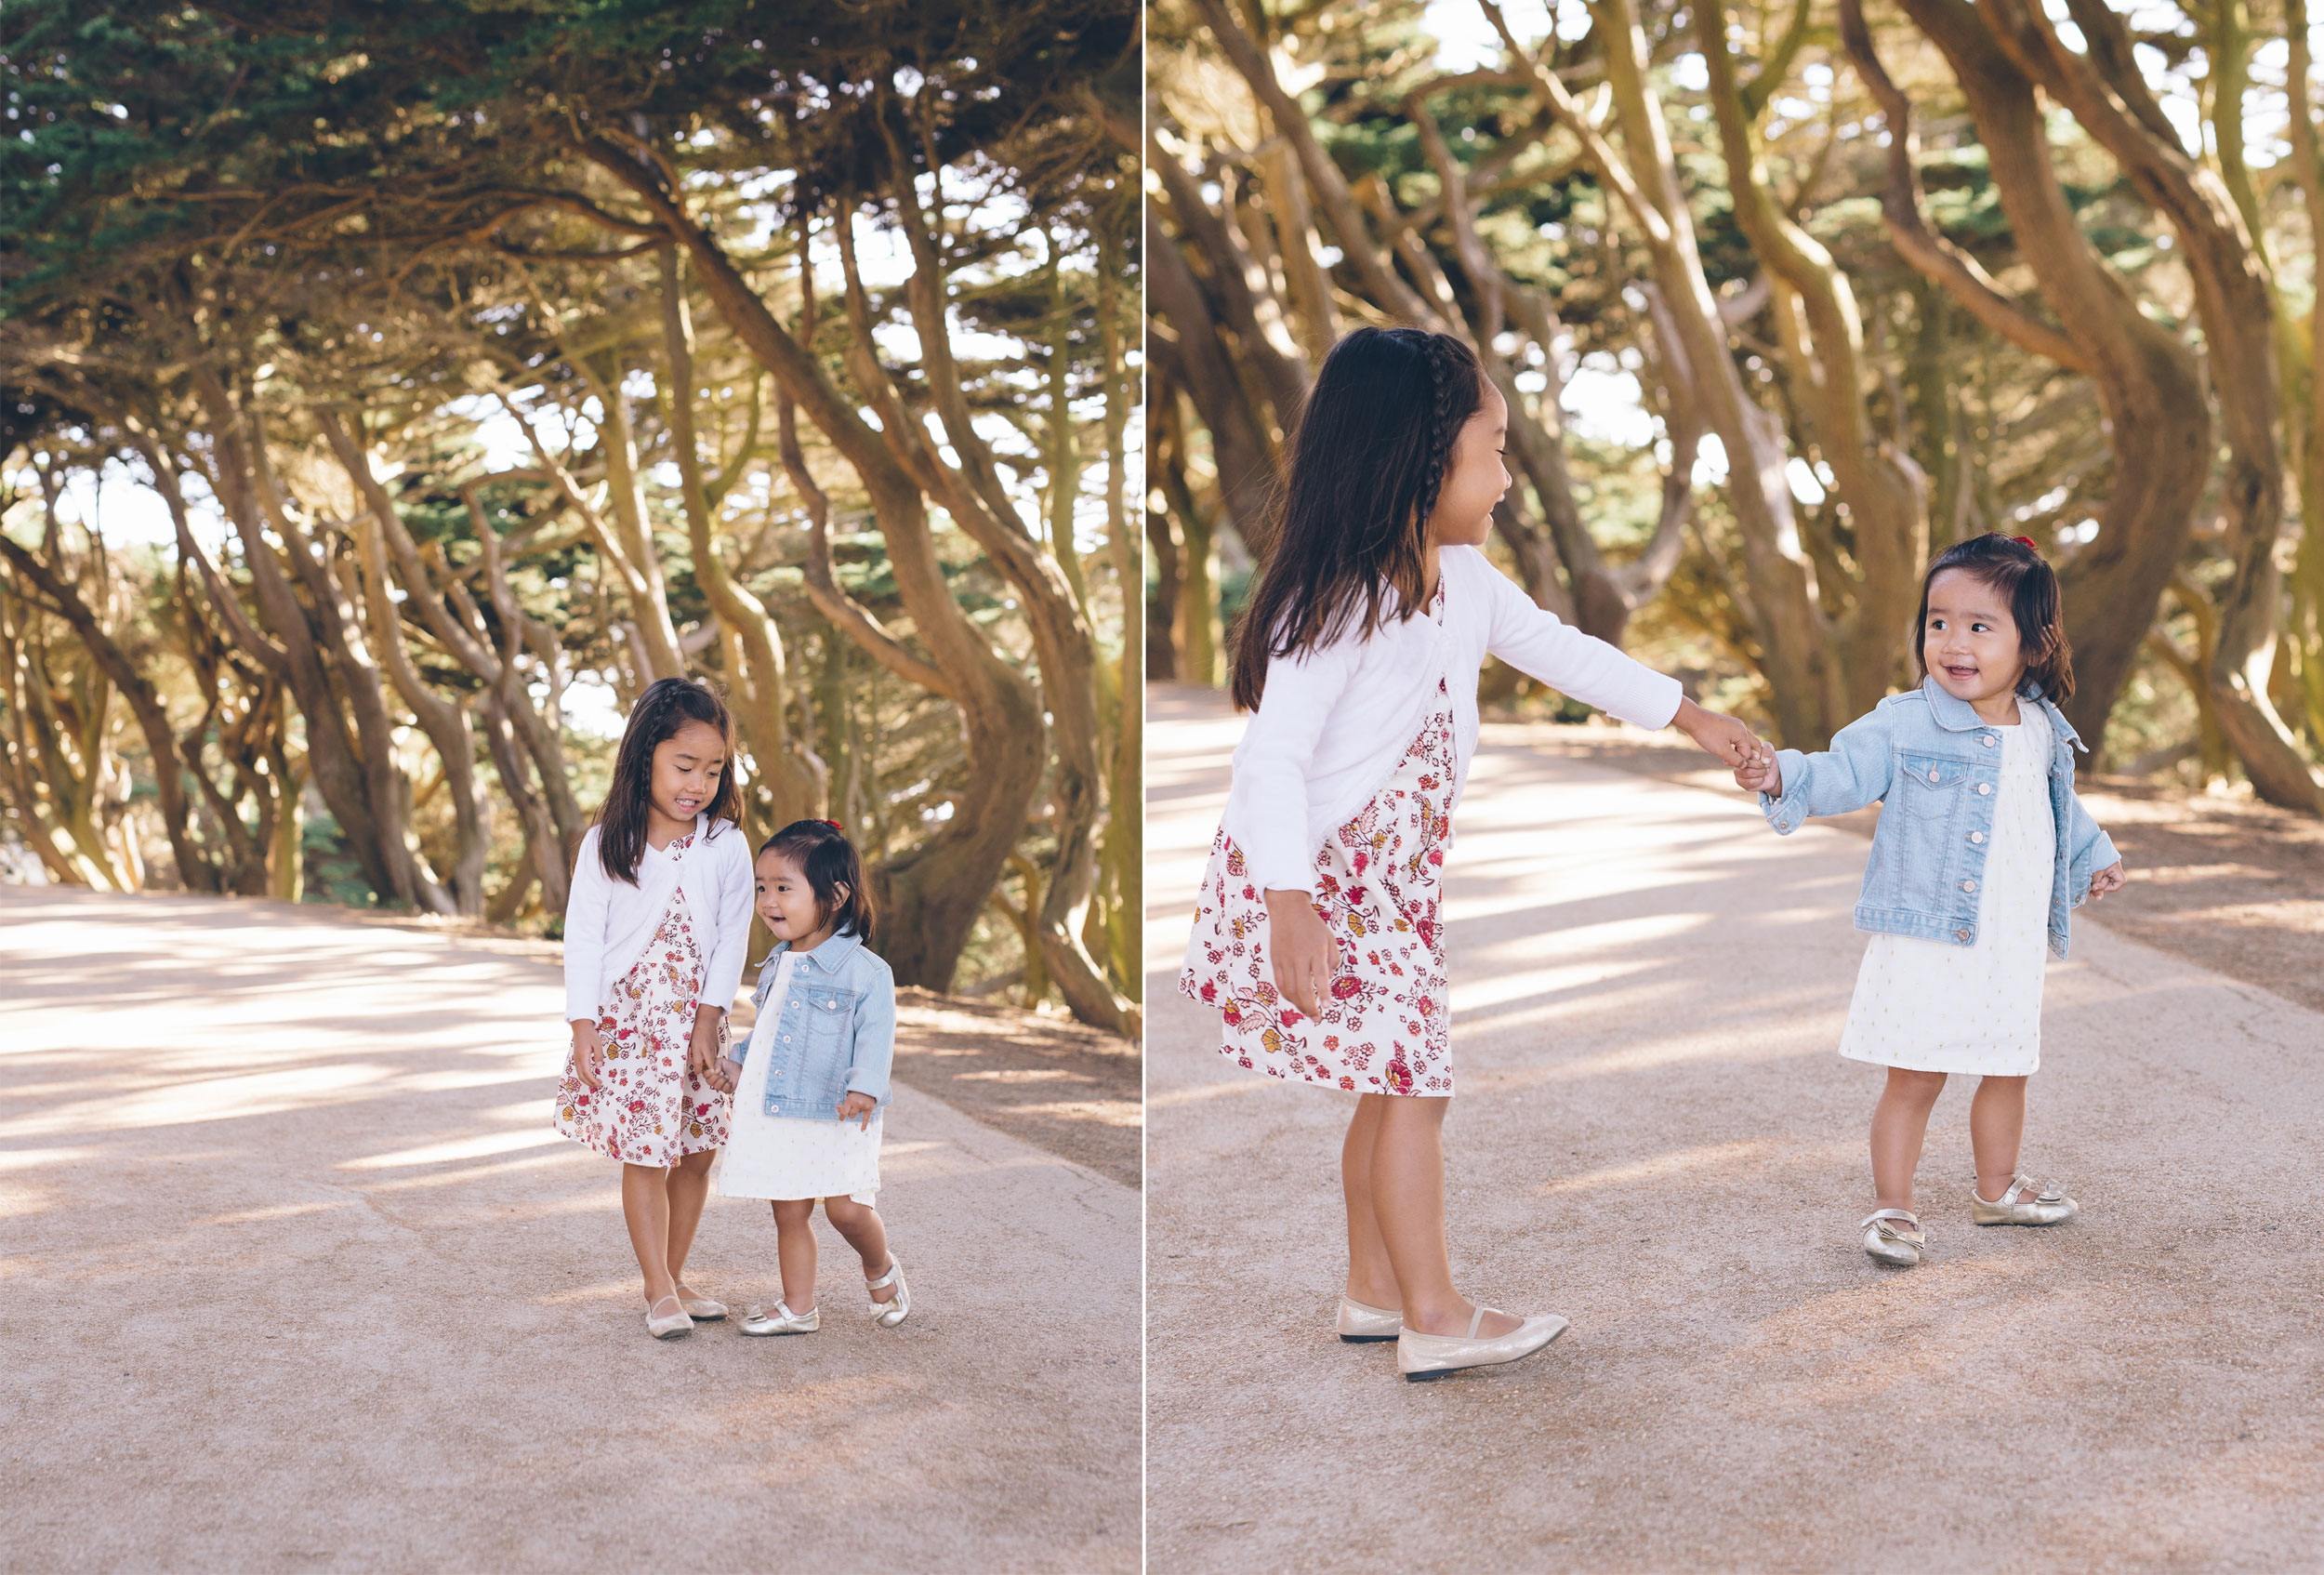 lands-end-family-photography.jpg